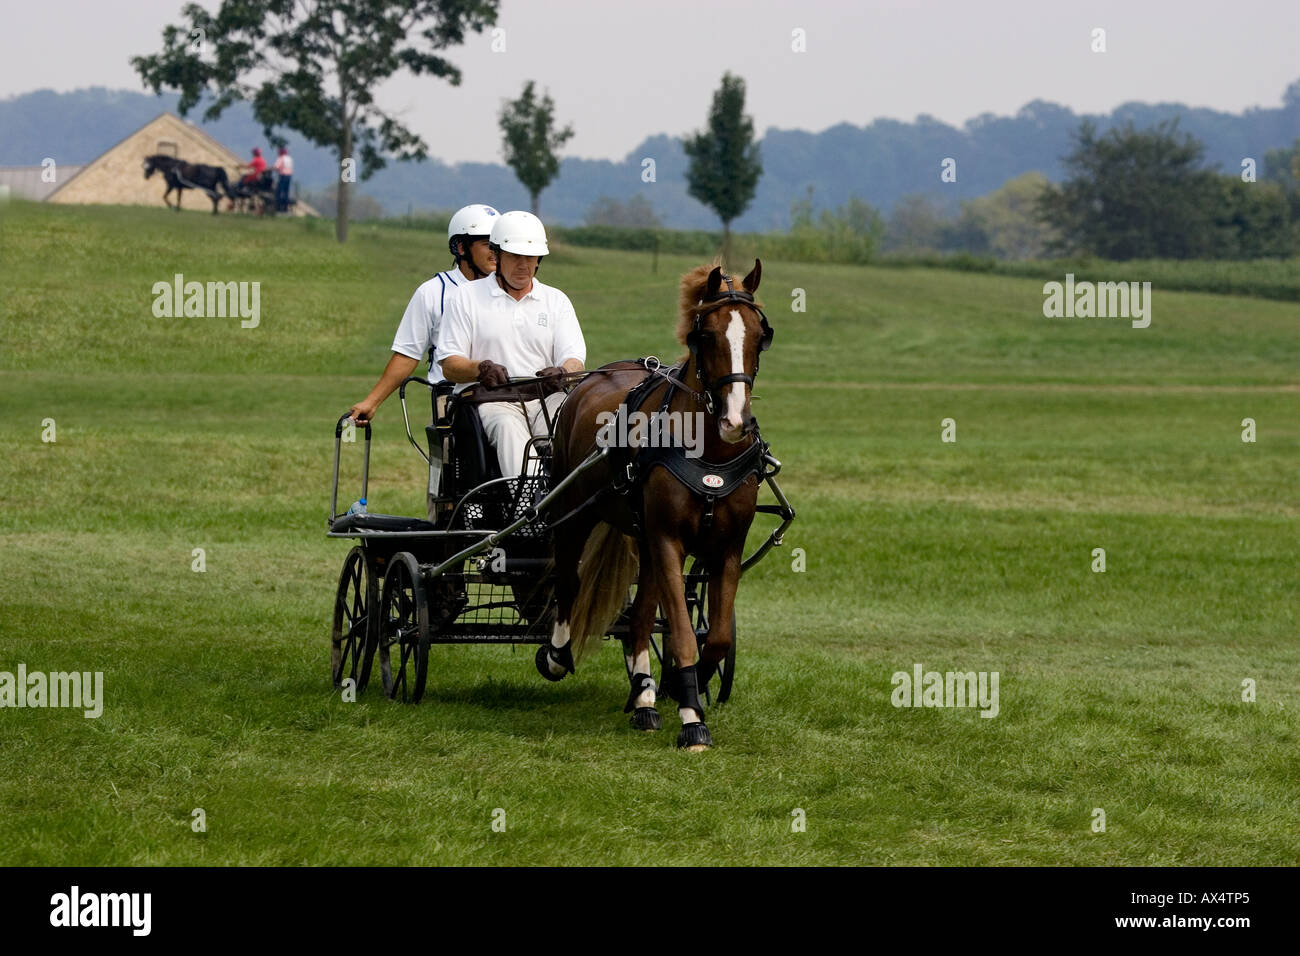 Equestrian Carriage Races. - Stock Image